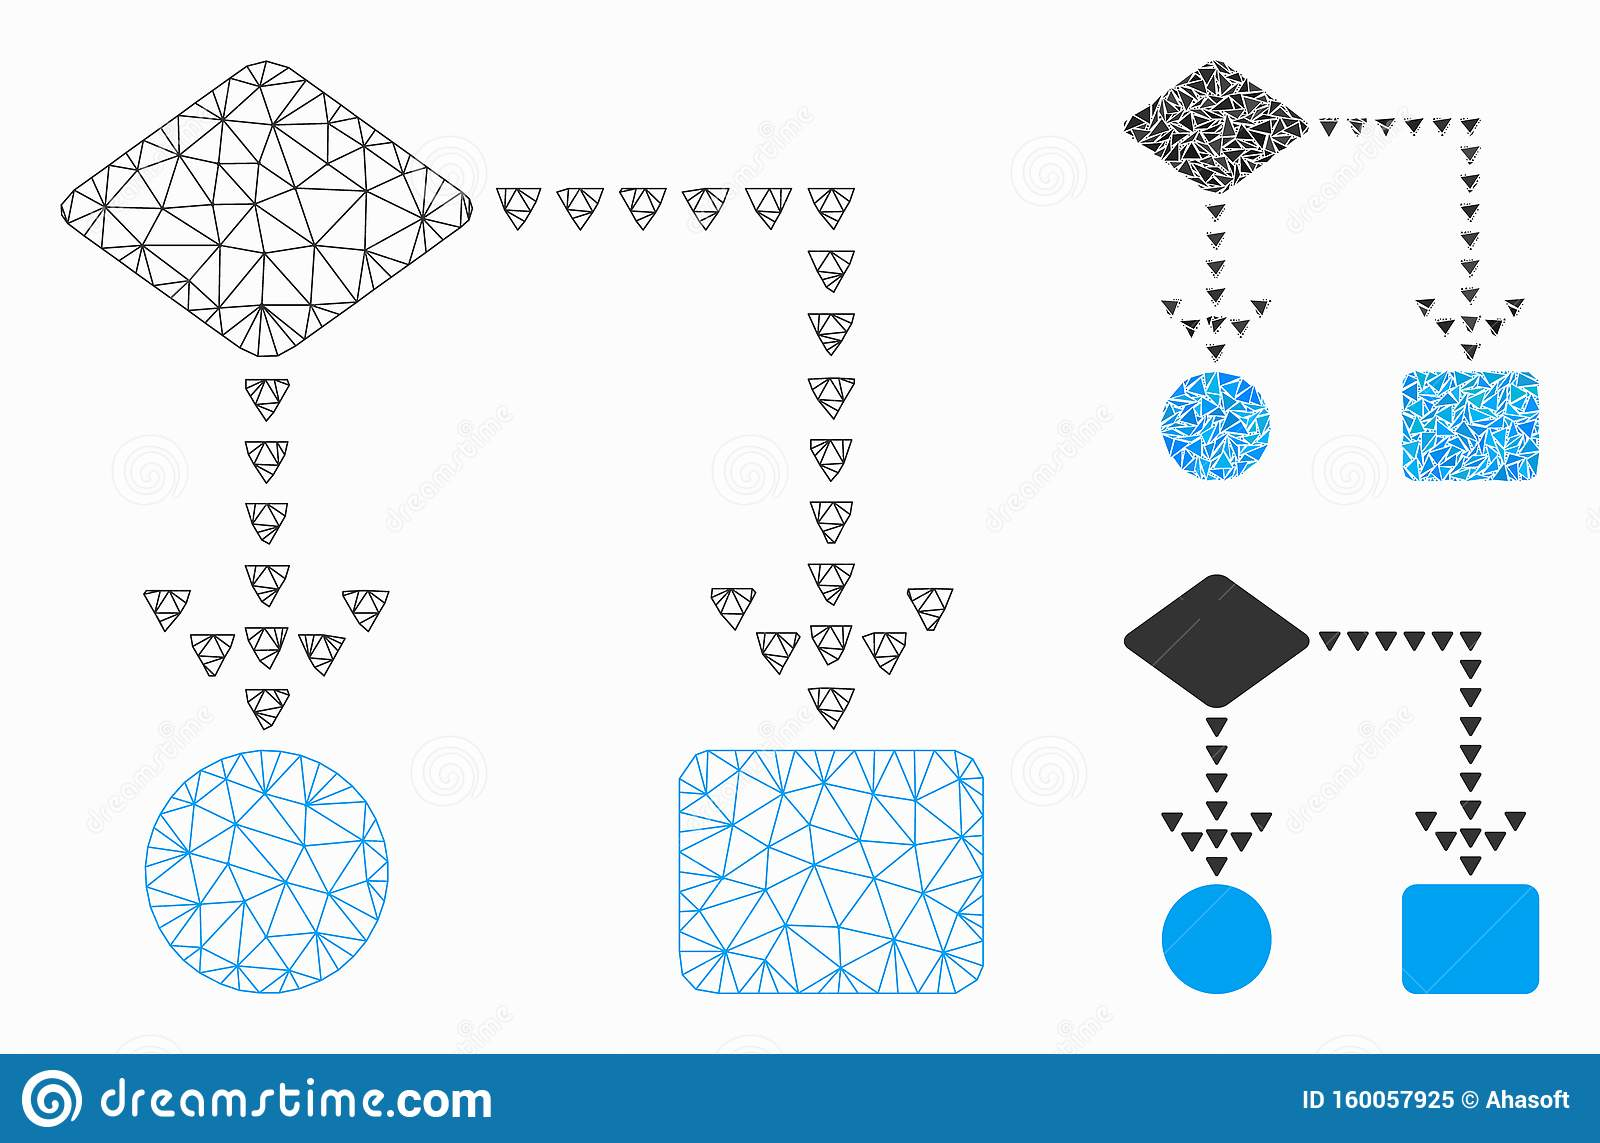 Algorithm Flowchart Vector Mesh Carcass Model and Triangle Mosaic Icon